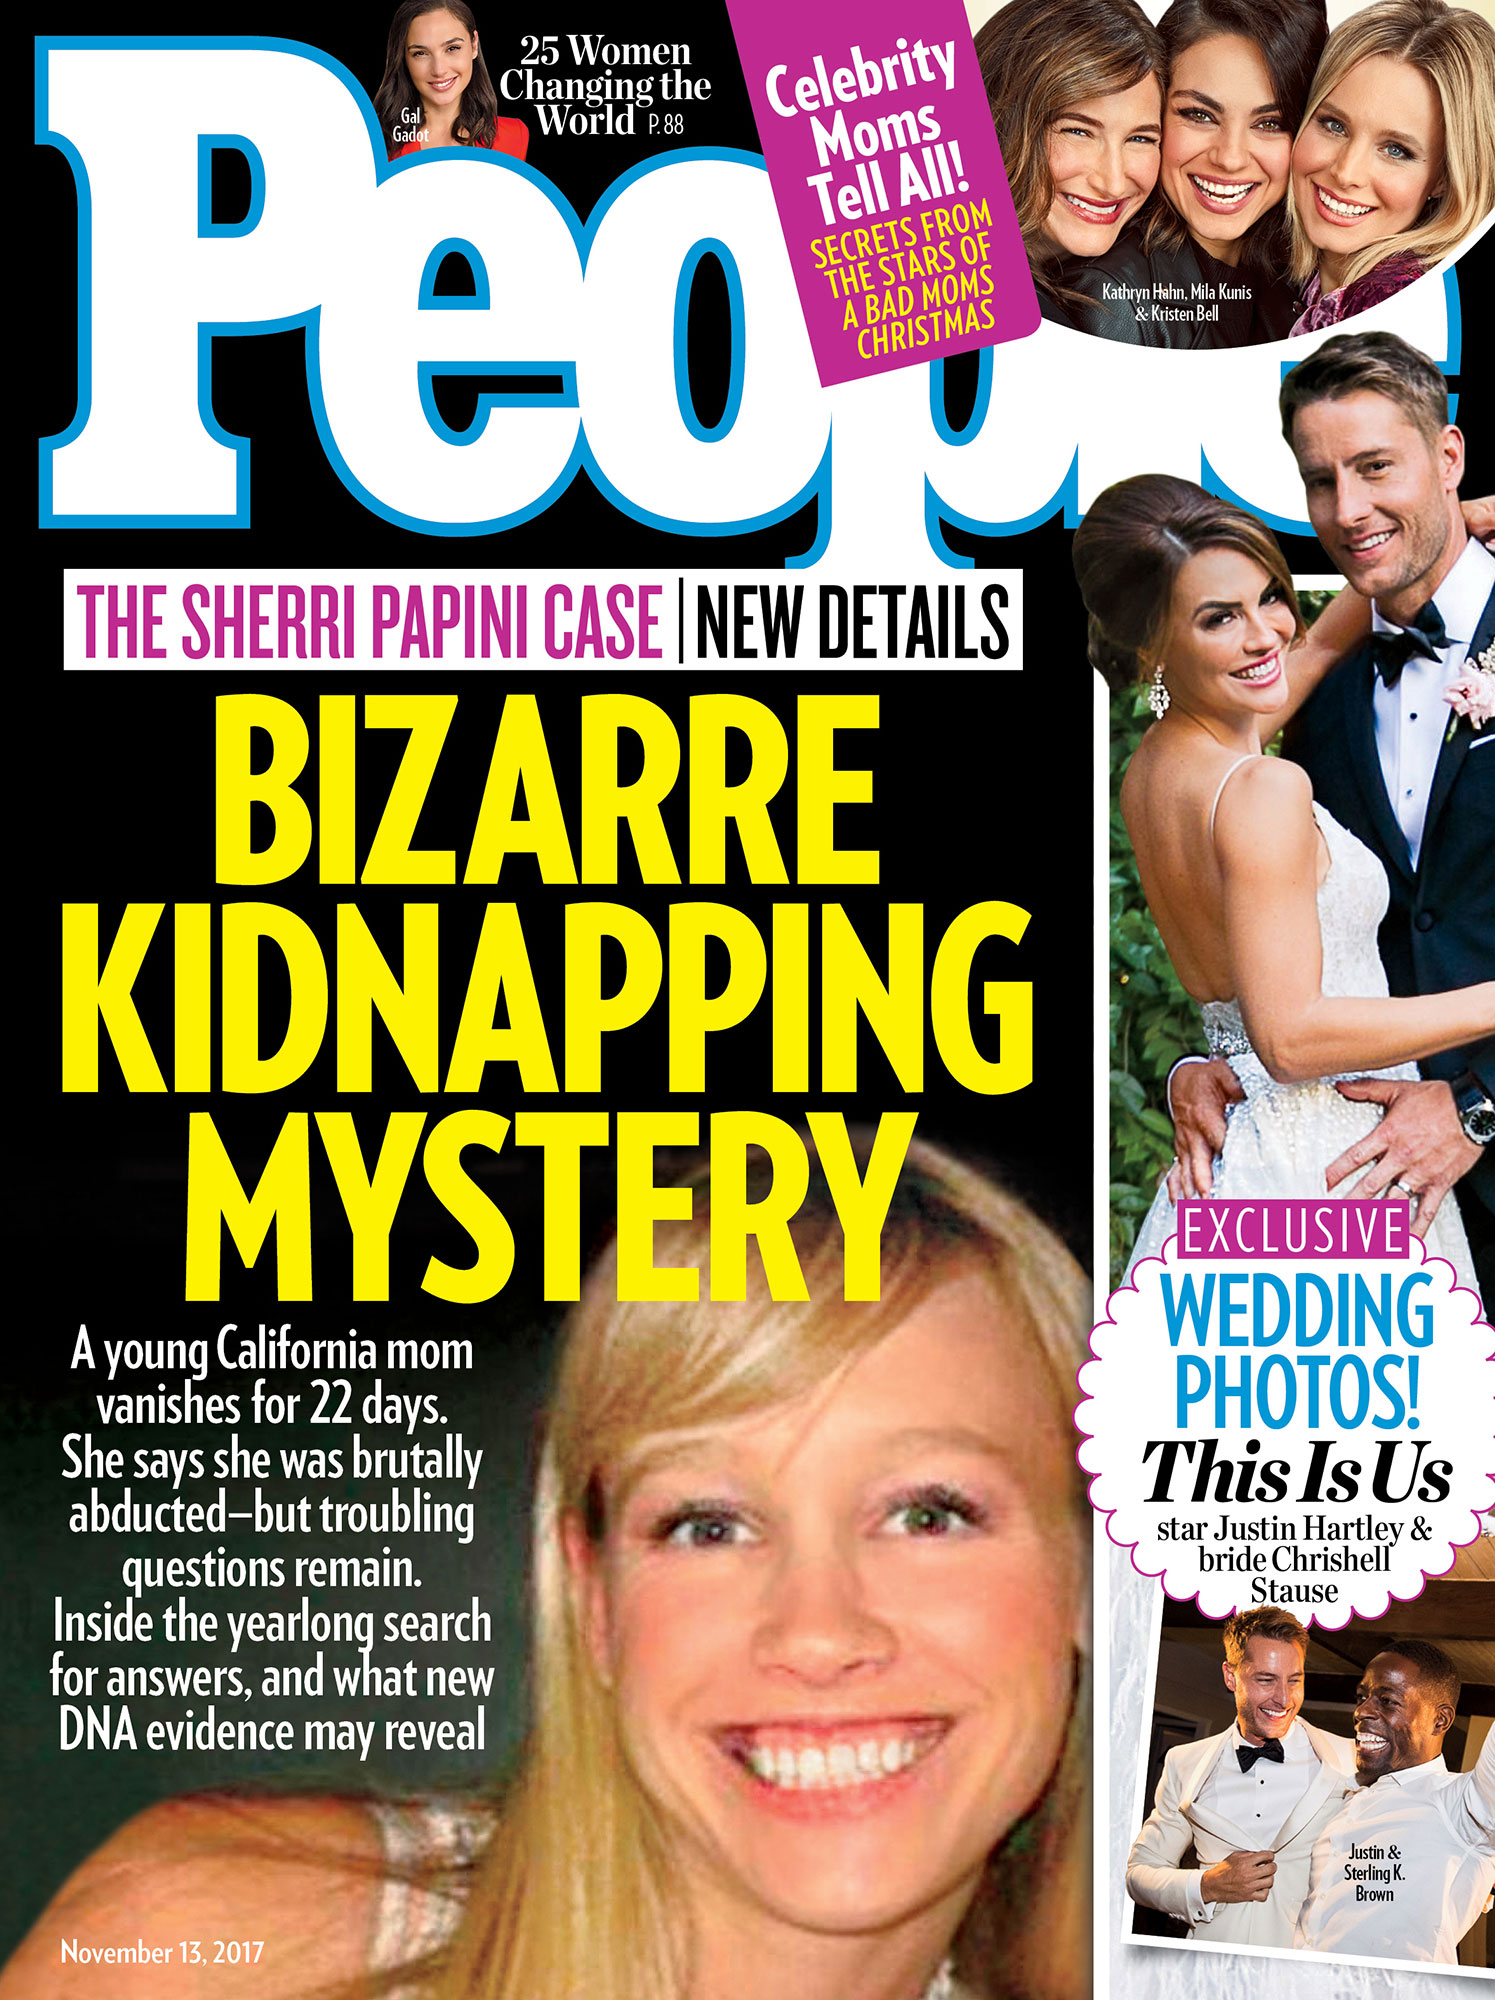 Justin Hartley Wedding on Cover of People Magazine